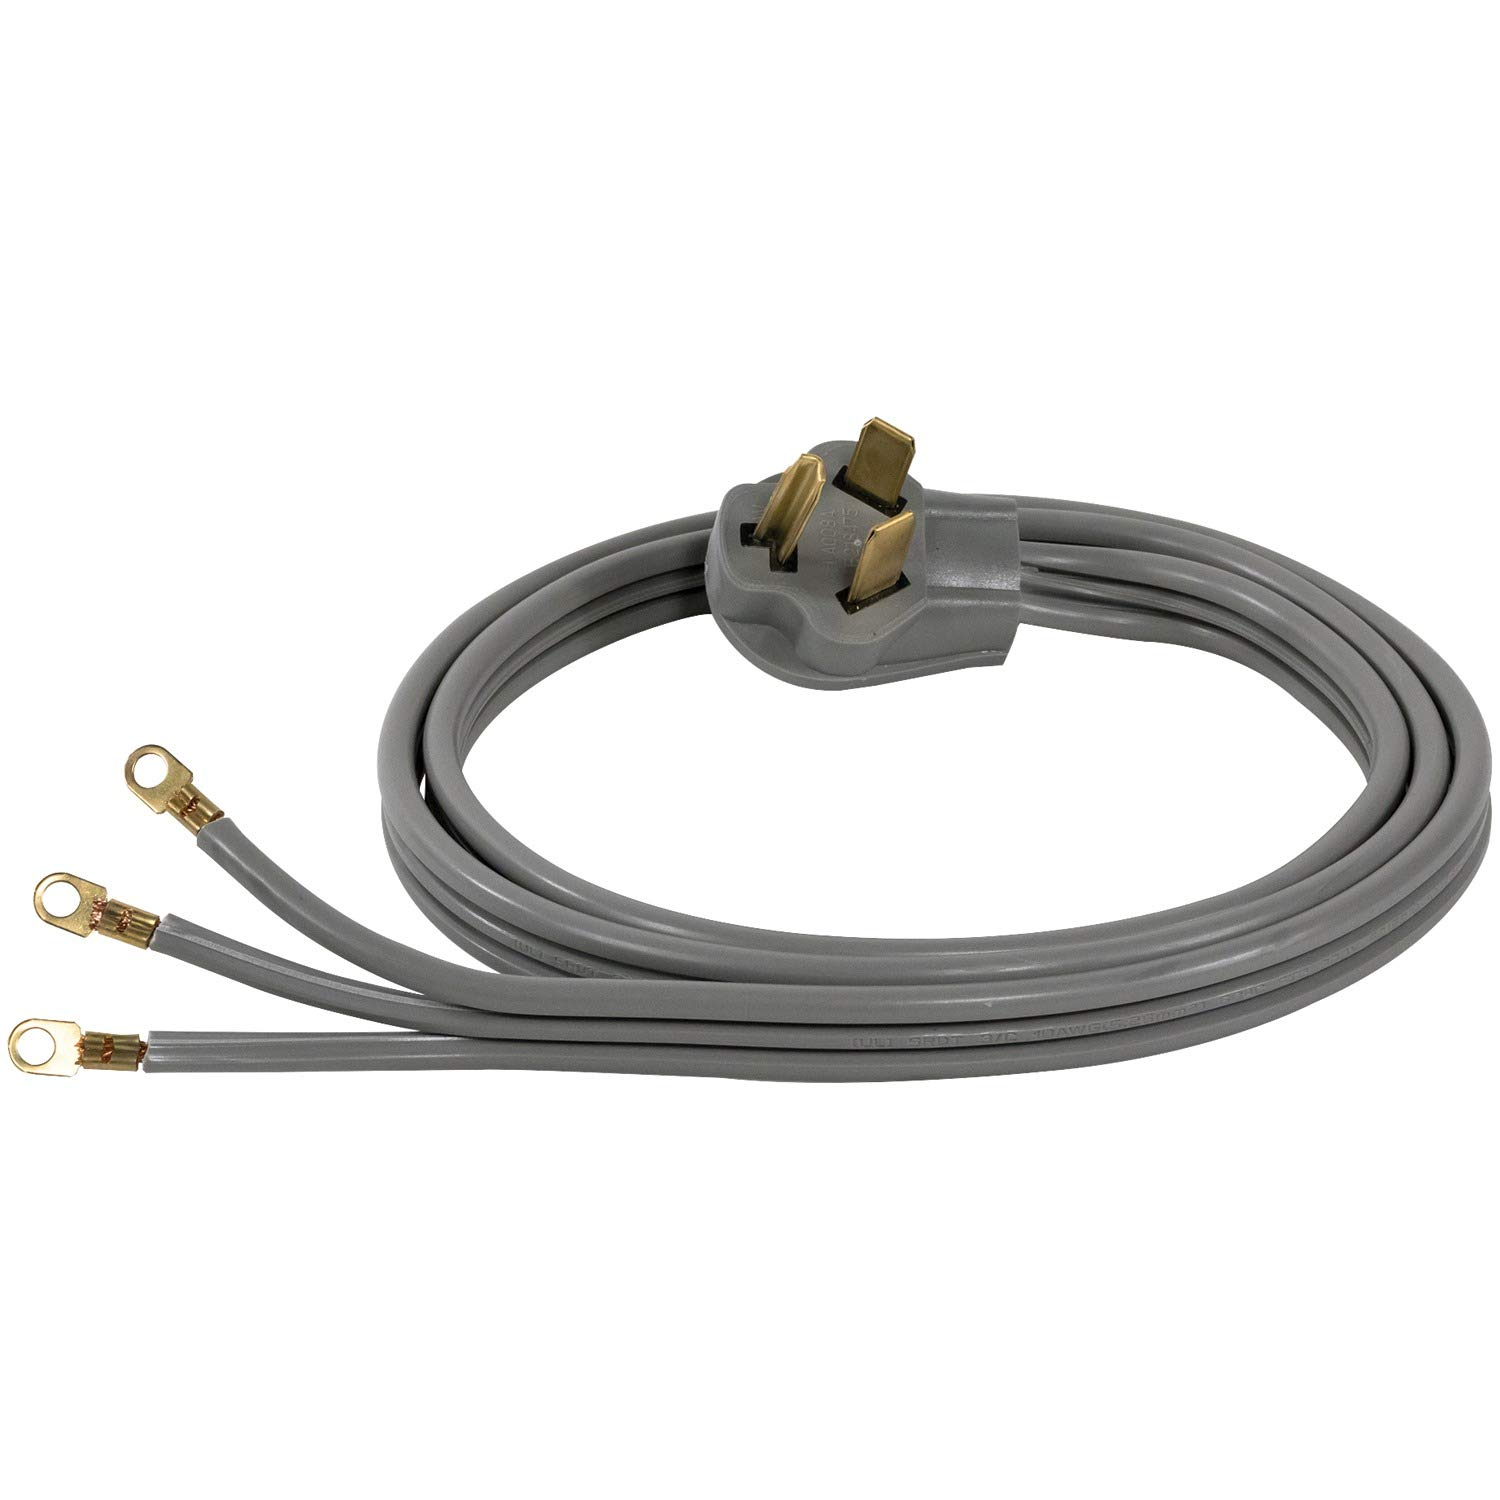 Certified Appliance Accessories 3 Wire Closed Eyelet 30 Prong Plug Wiring 4 Dryer Cord Red Amp 6ft Home Improvement